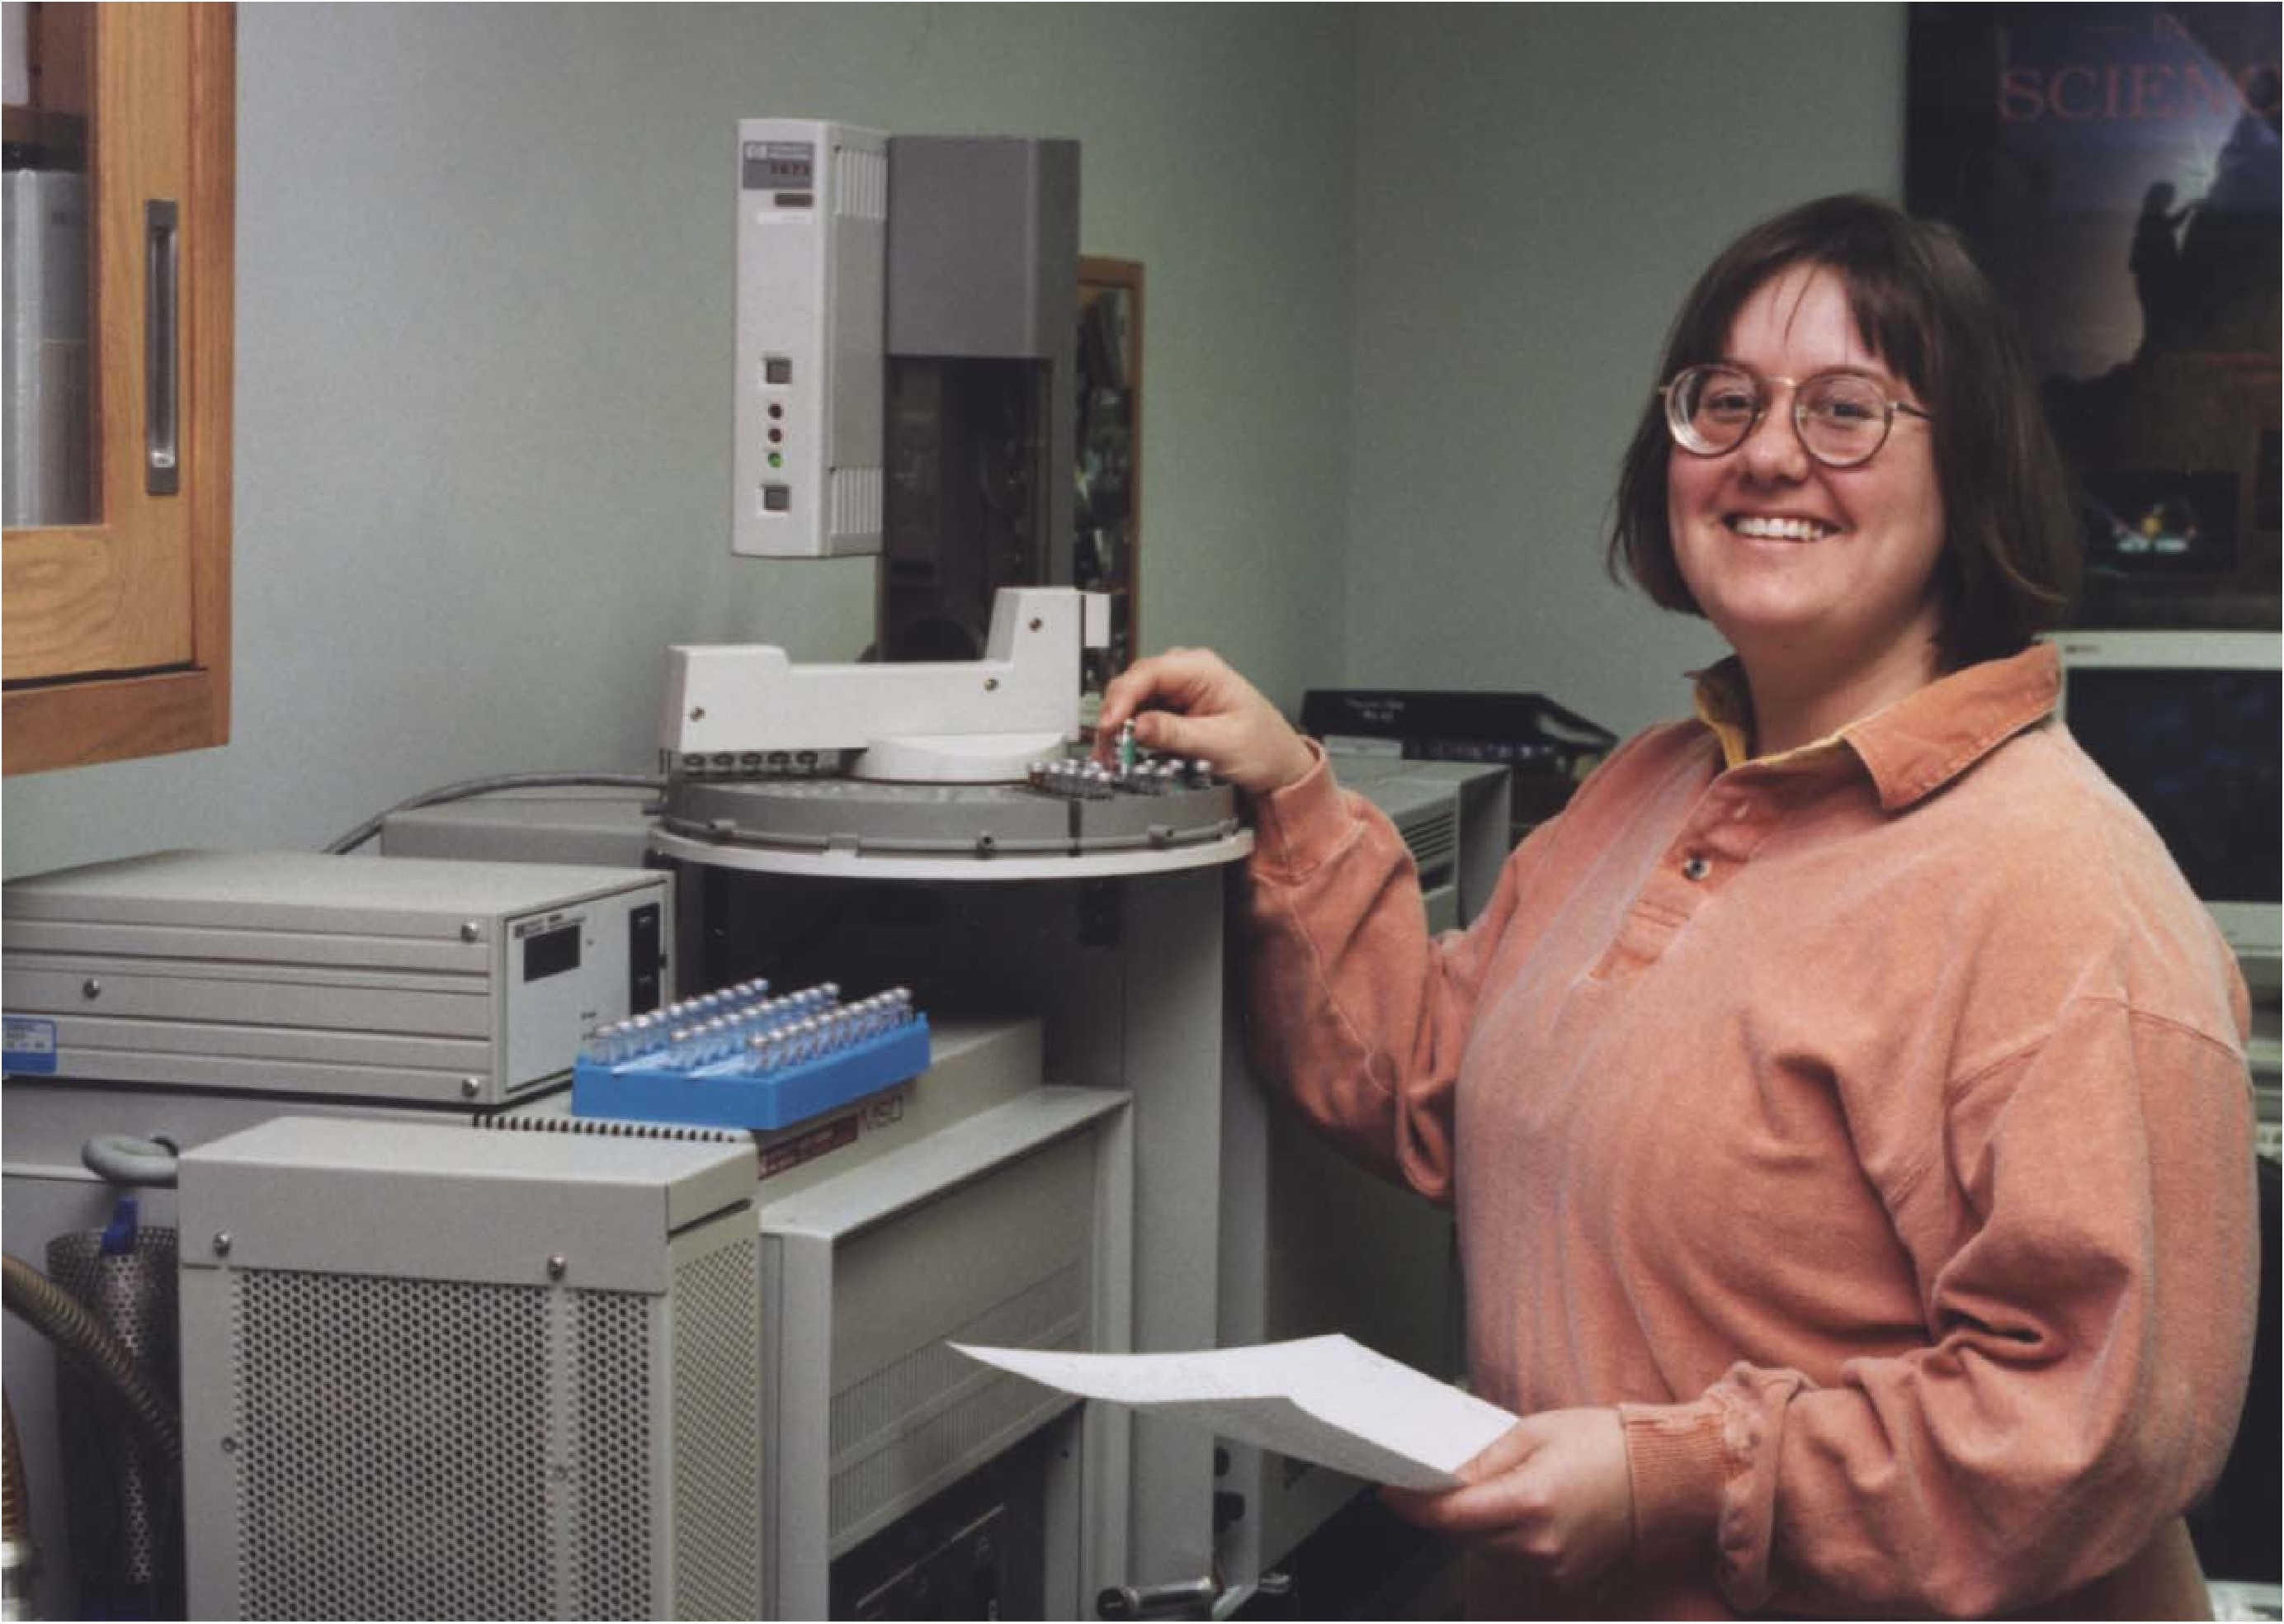 USGS scientist operating a gas chromatograph /mass spectrometer (GC/MS)